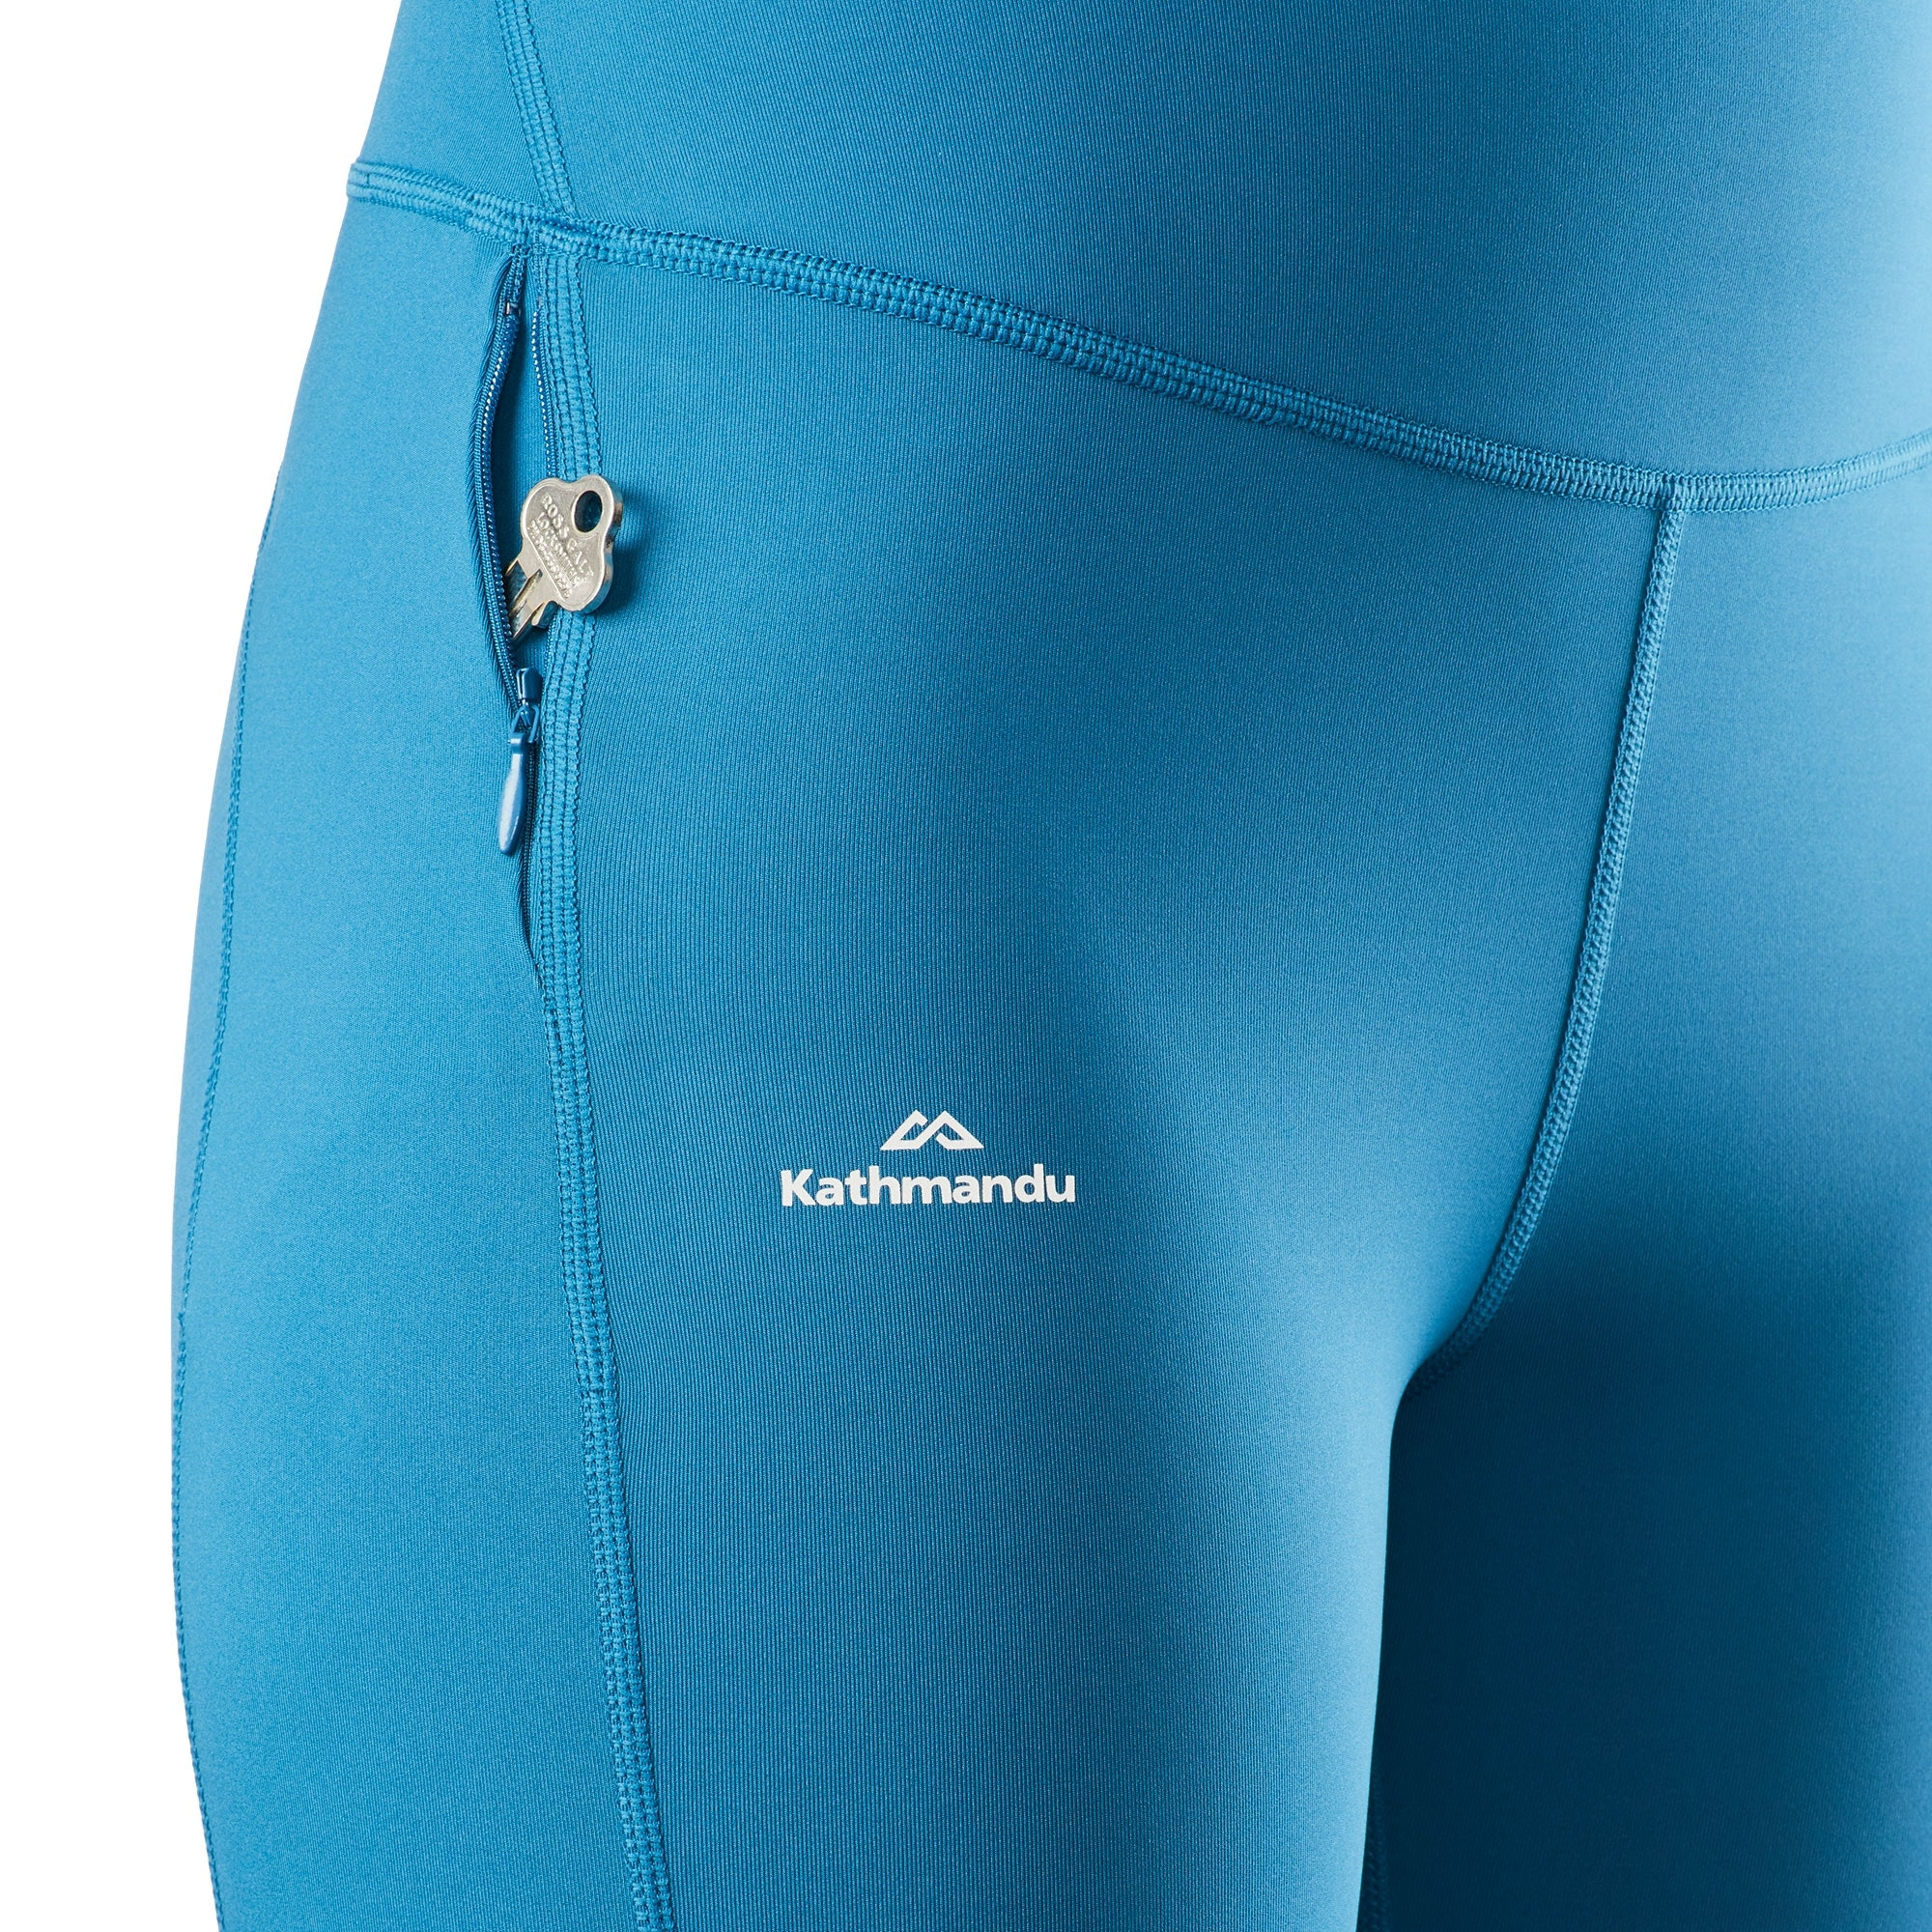 NEW-Kathmandu-Zeolite-Women-039-s-Active-Performance-3-4-Leggings thumbnail 15